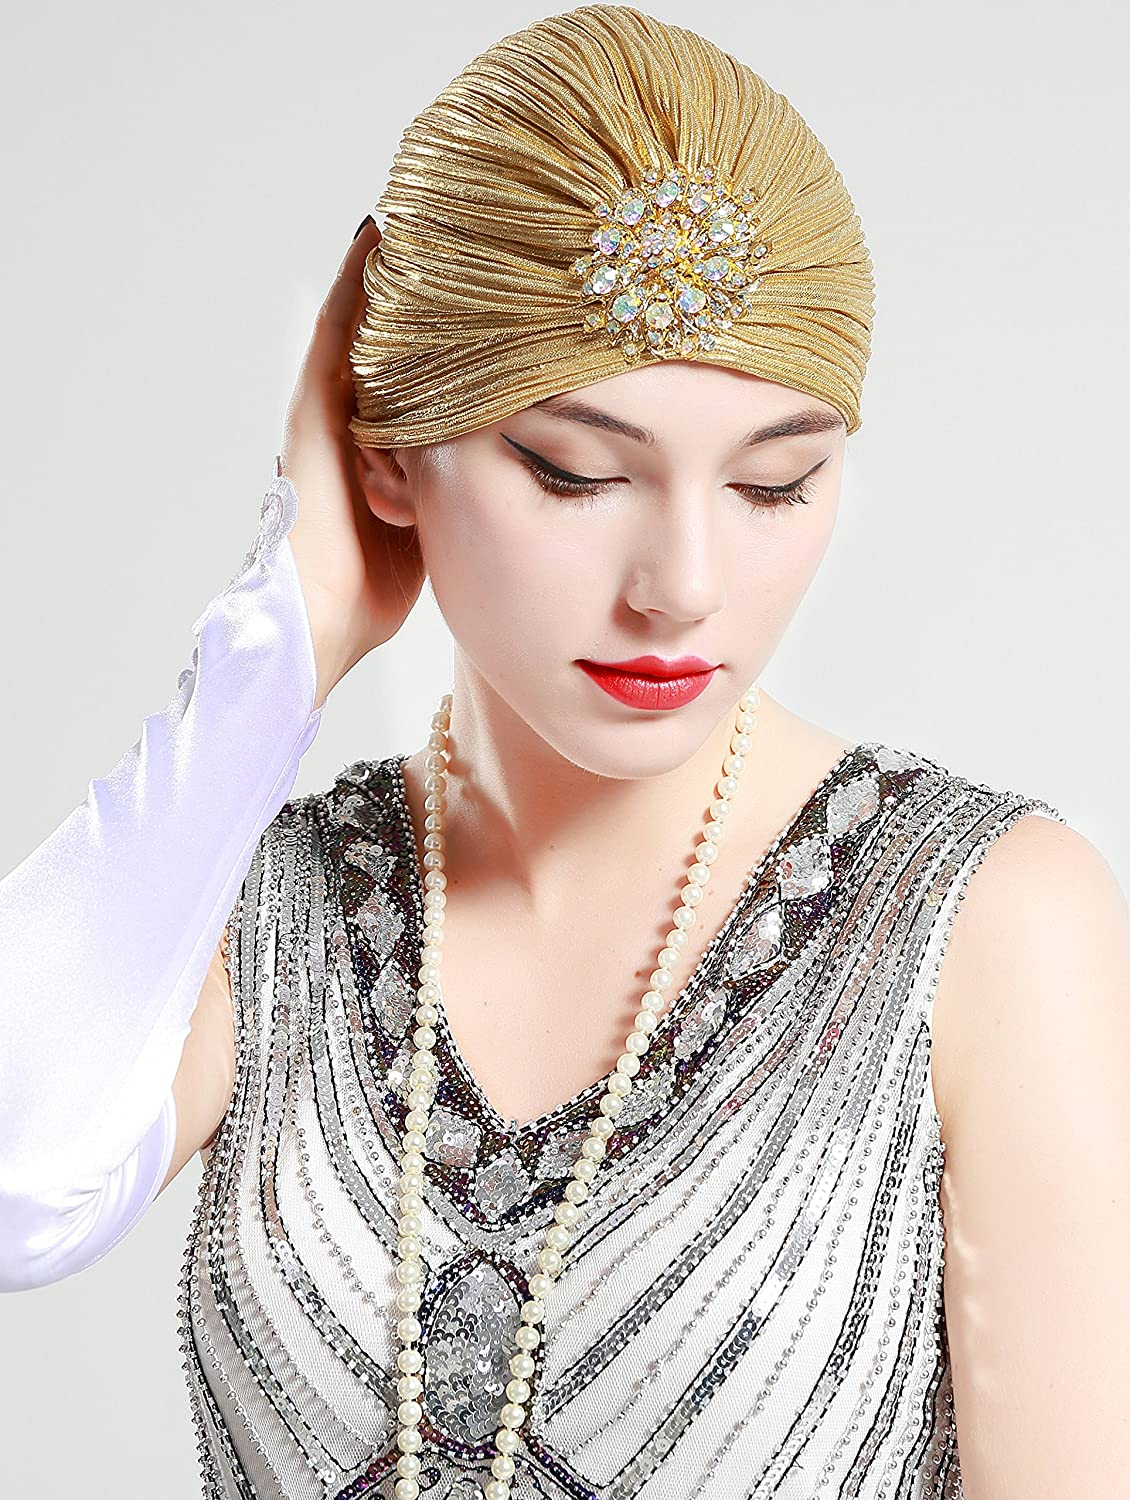 Hippie Hats,  70s Hats BABEYOND Womens Ruffle Turban Hat Knit Turban Headwraps with Detachable Crystal Brooch for 1920s Gatsby Party $11.99 AT vintagedancer.com